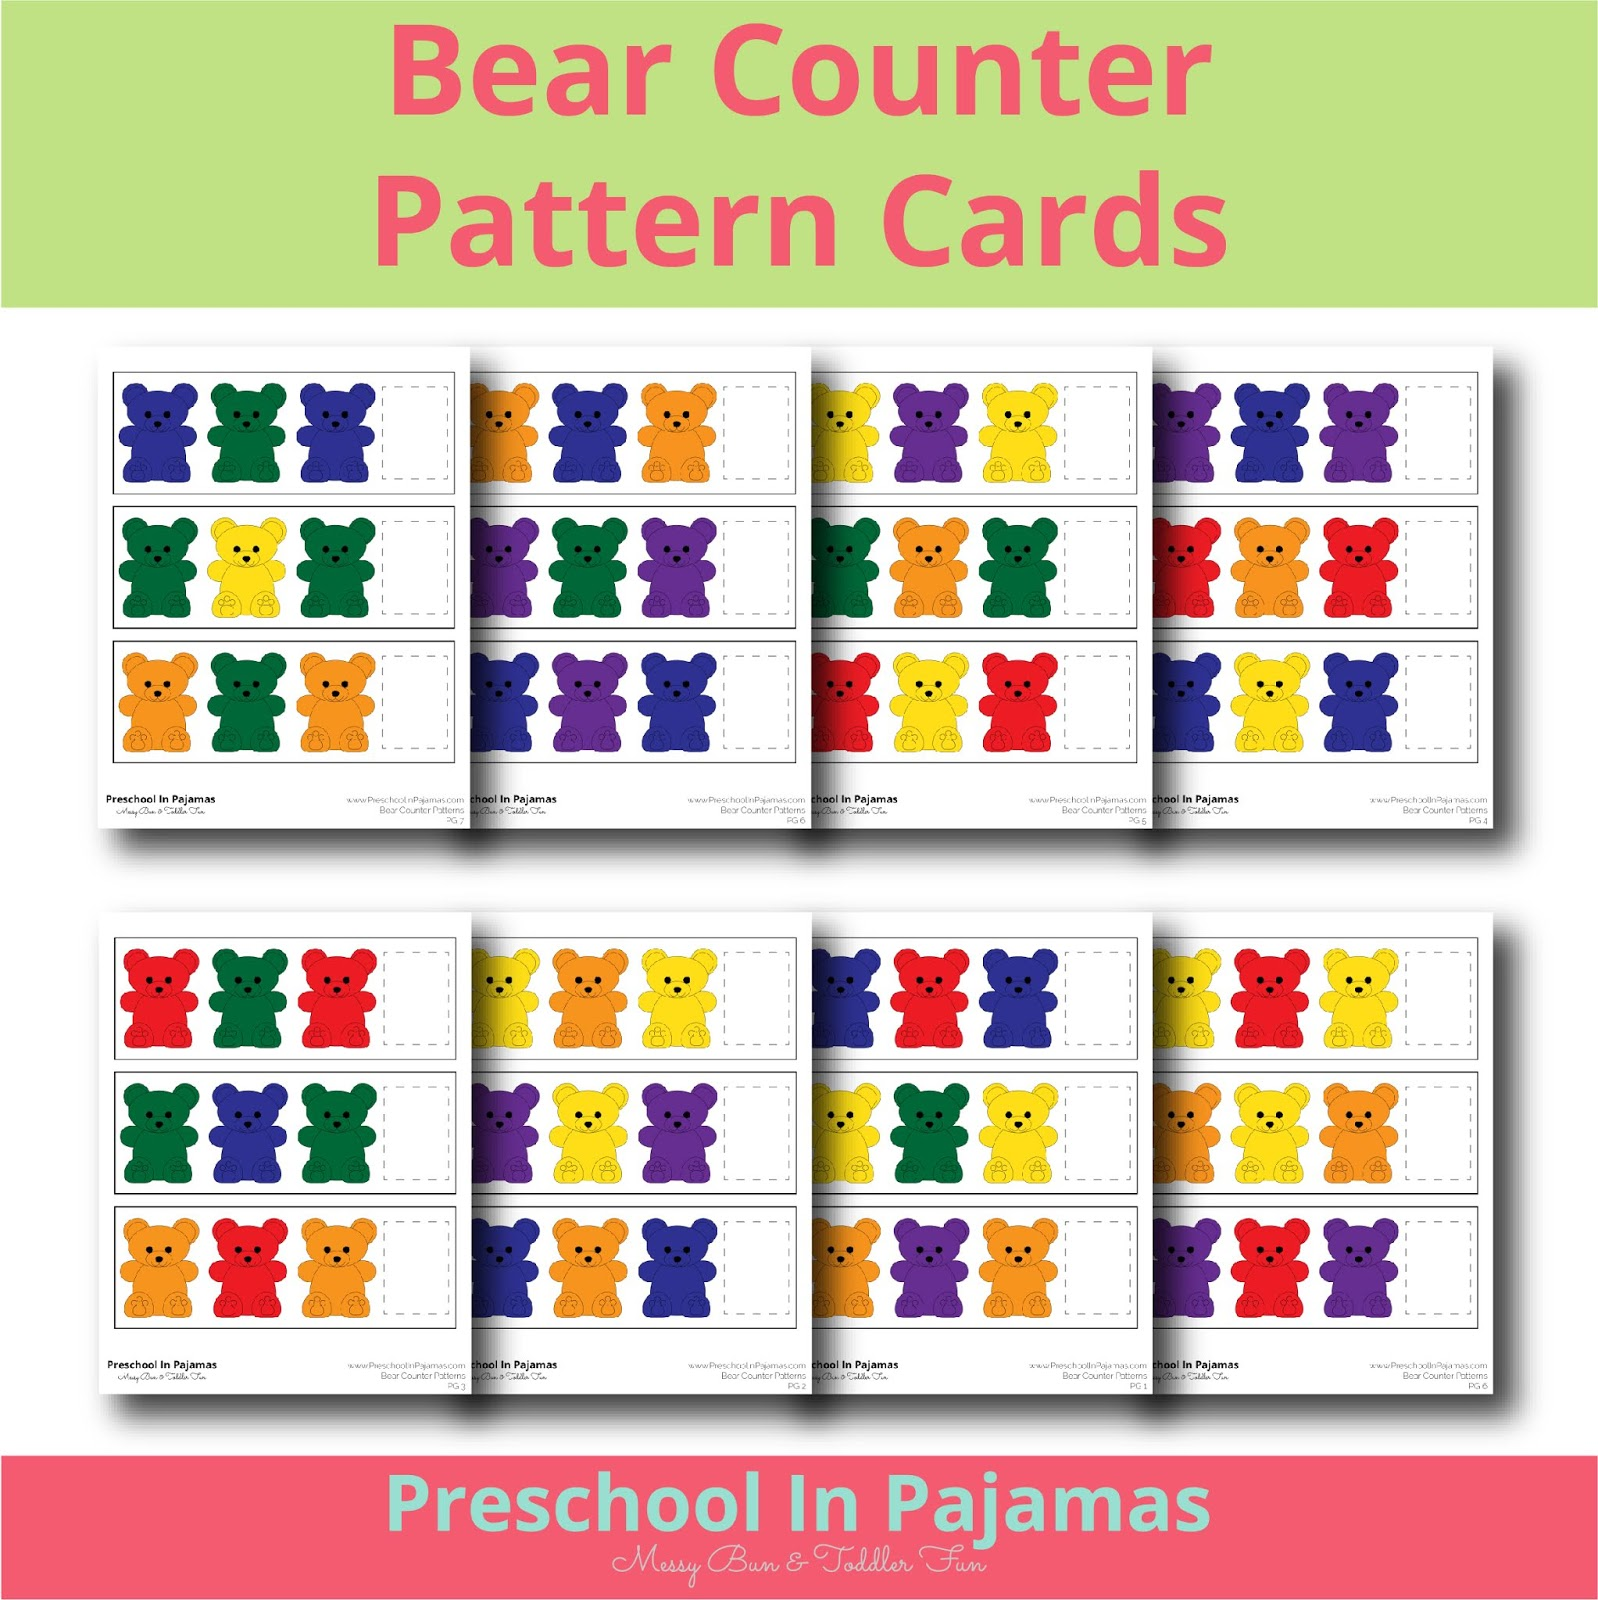 Free Bear Counter Pattern Cards Printable